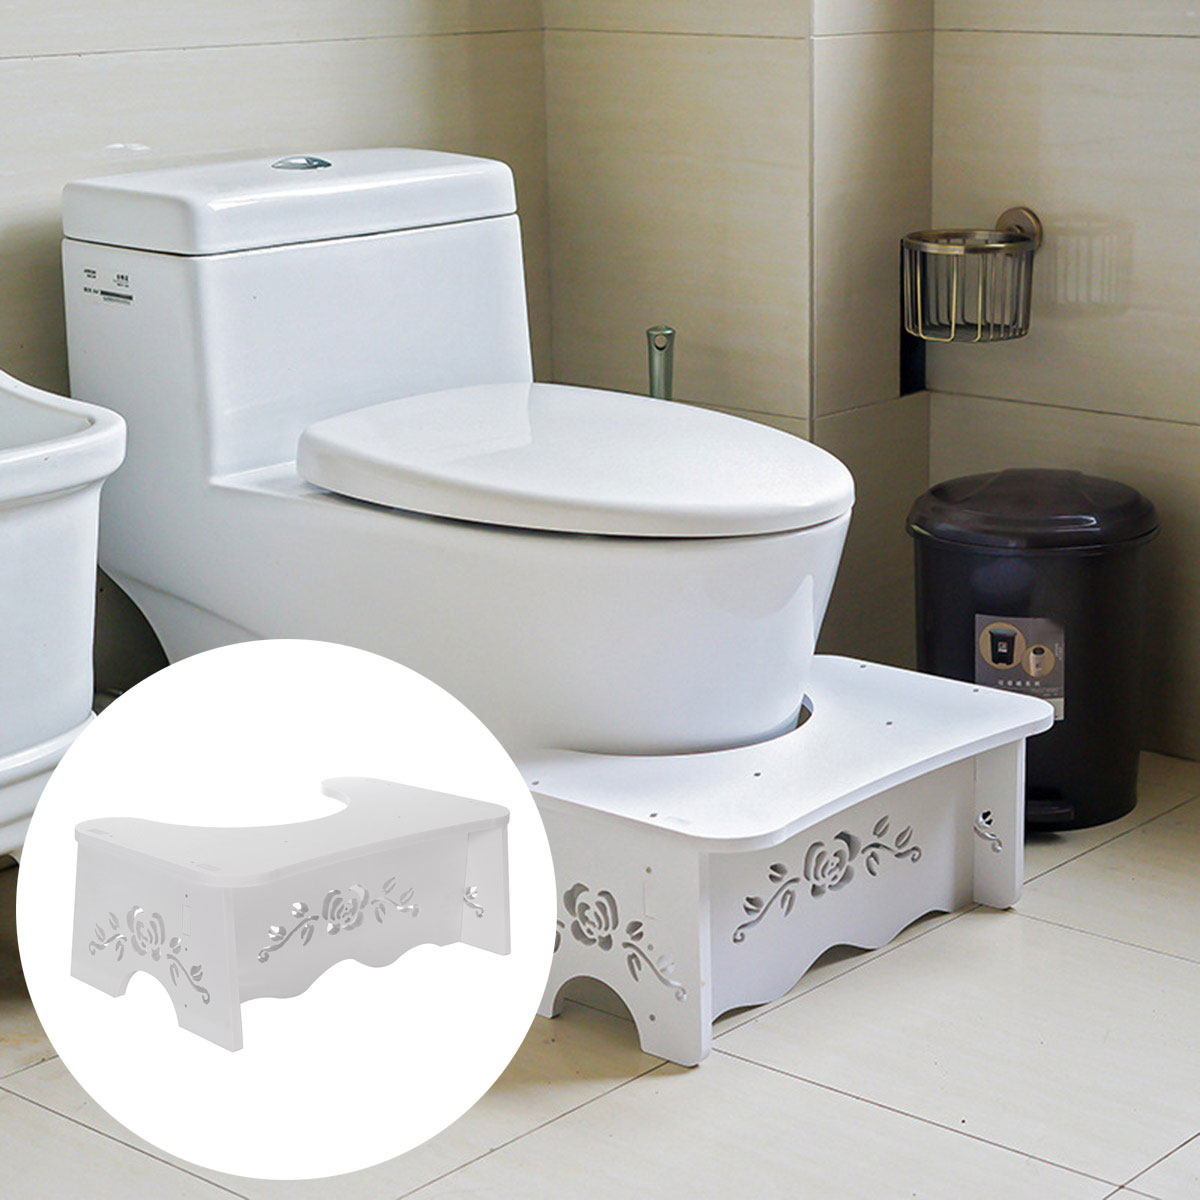 Non Slip Bathroom Squatty Toilet Stool Footstep Bathroom Potty Squat Aid Constipation Piles Relief